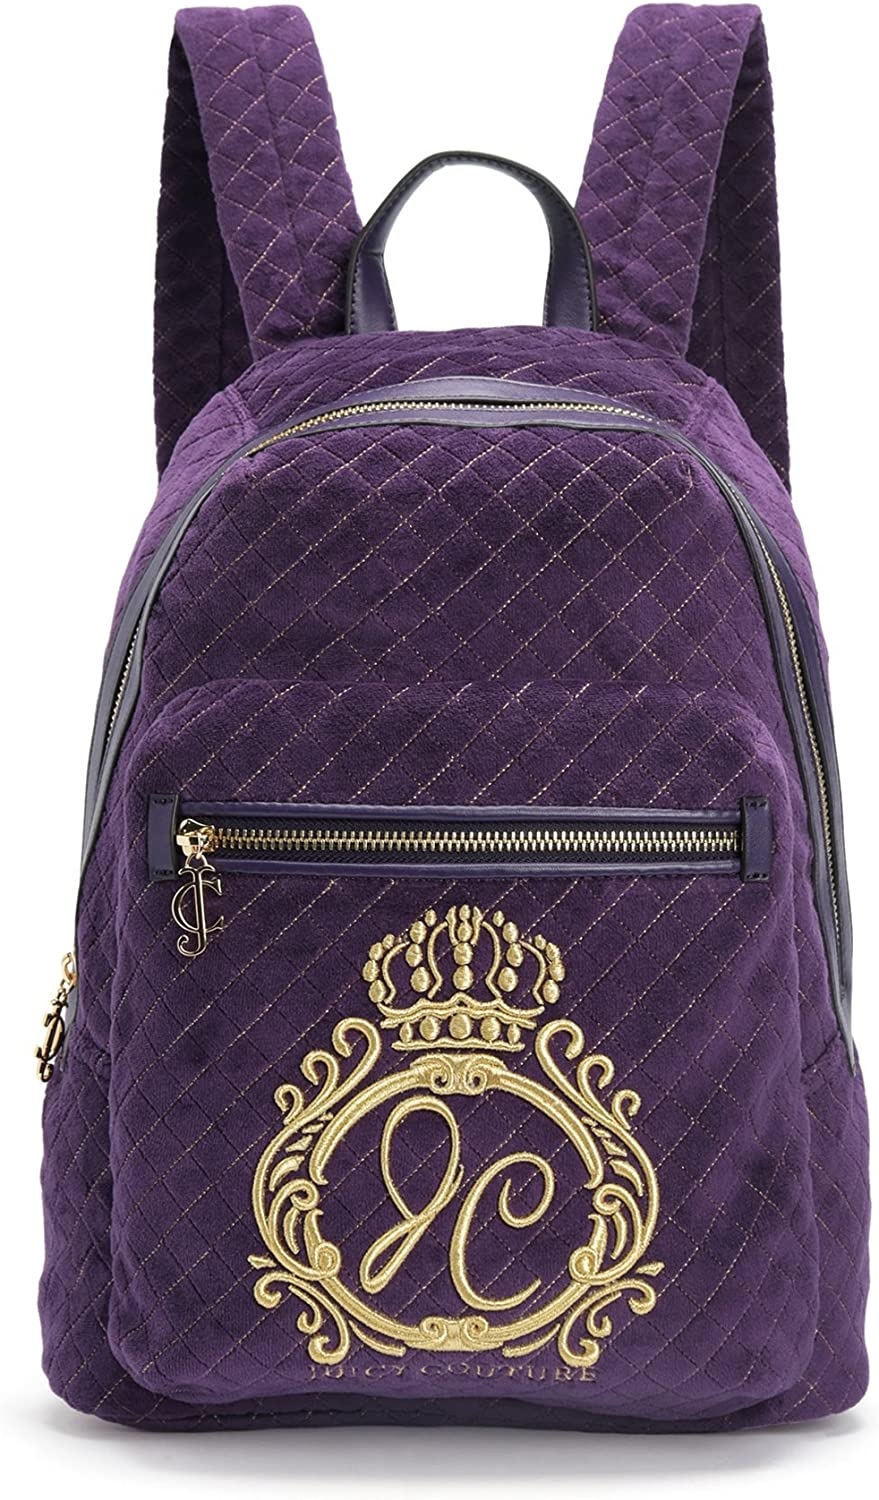 Juicy Couture Jc Monogram Velour Backpack, Aubergine